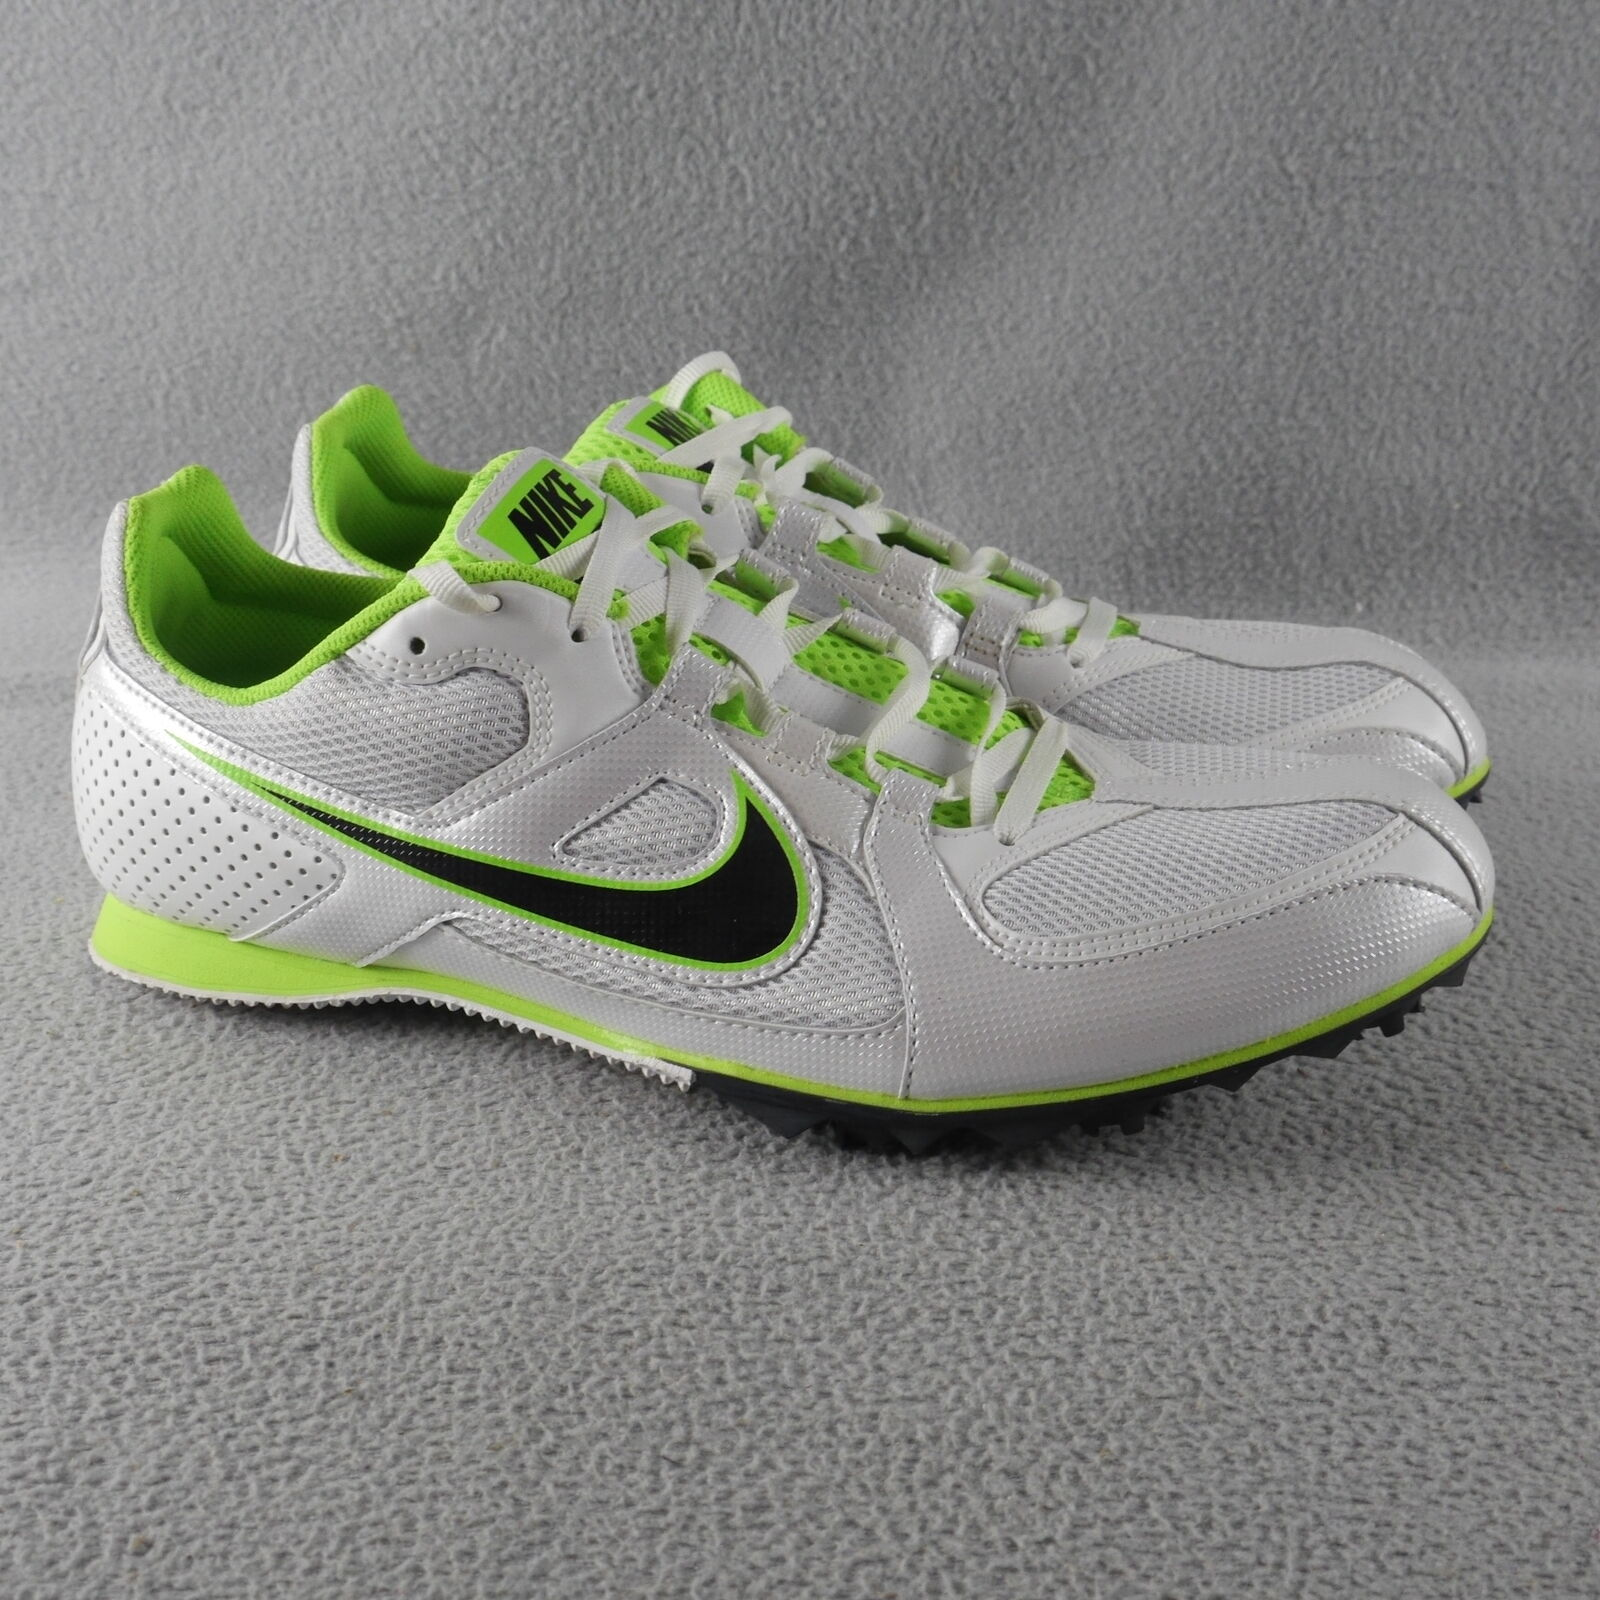 61f46d382f EUC Nike 468648 103 Zoom Rival MD Track & Field White Lime Black Size 11  ANB nsckkm5207-Athletic Shoes